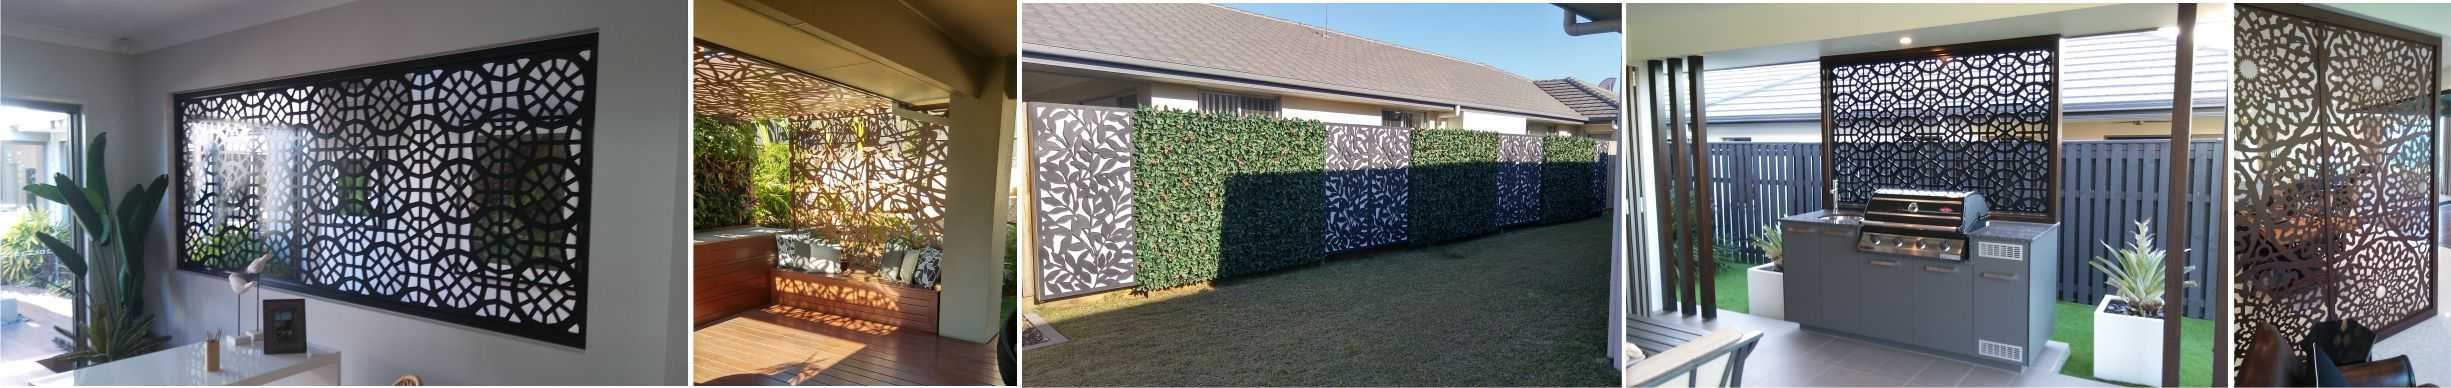 Laser Cut Decorative and privacy screens designs metal aluminium